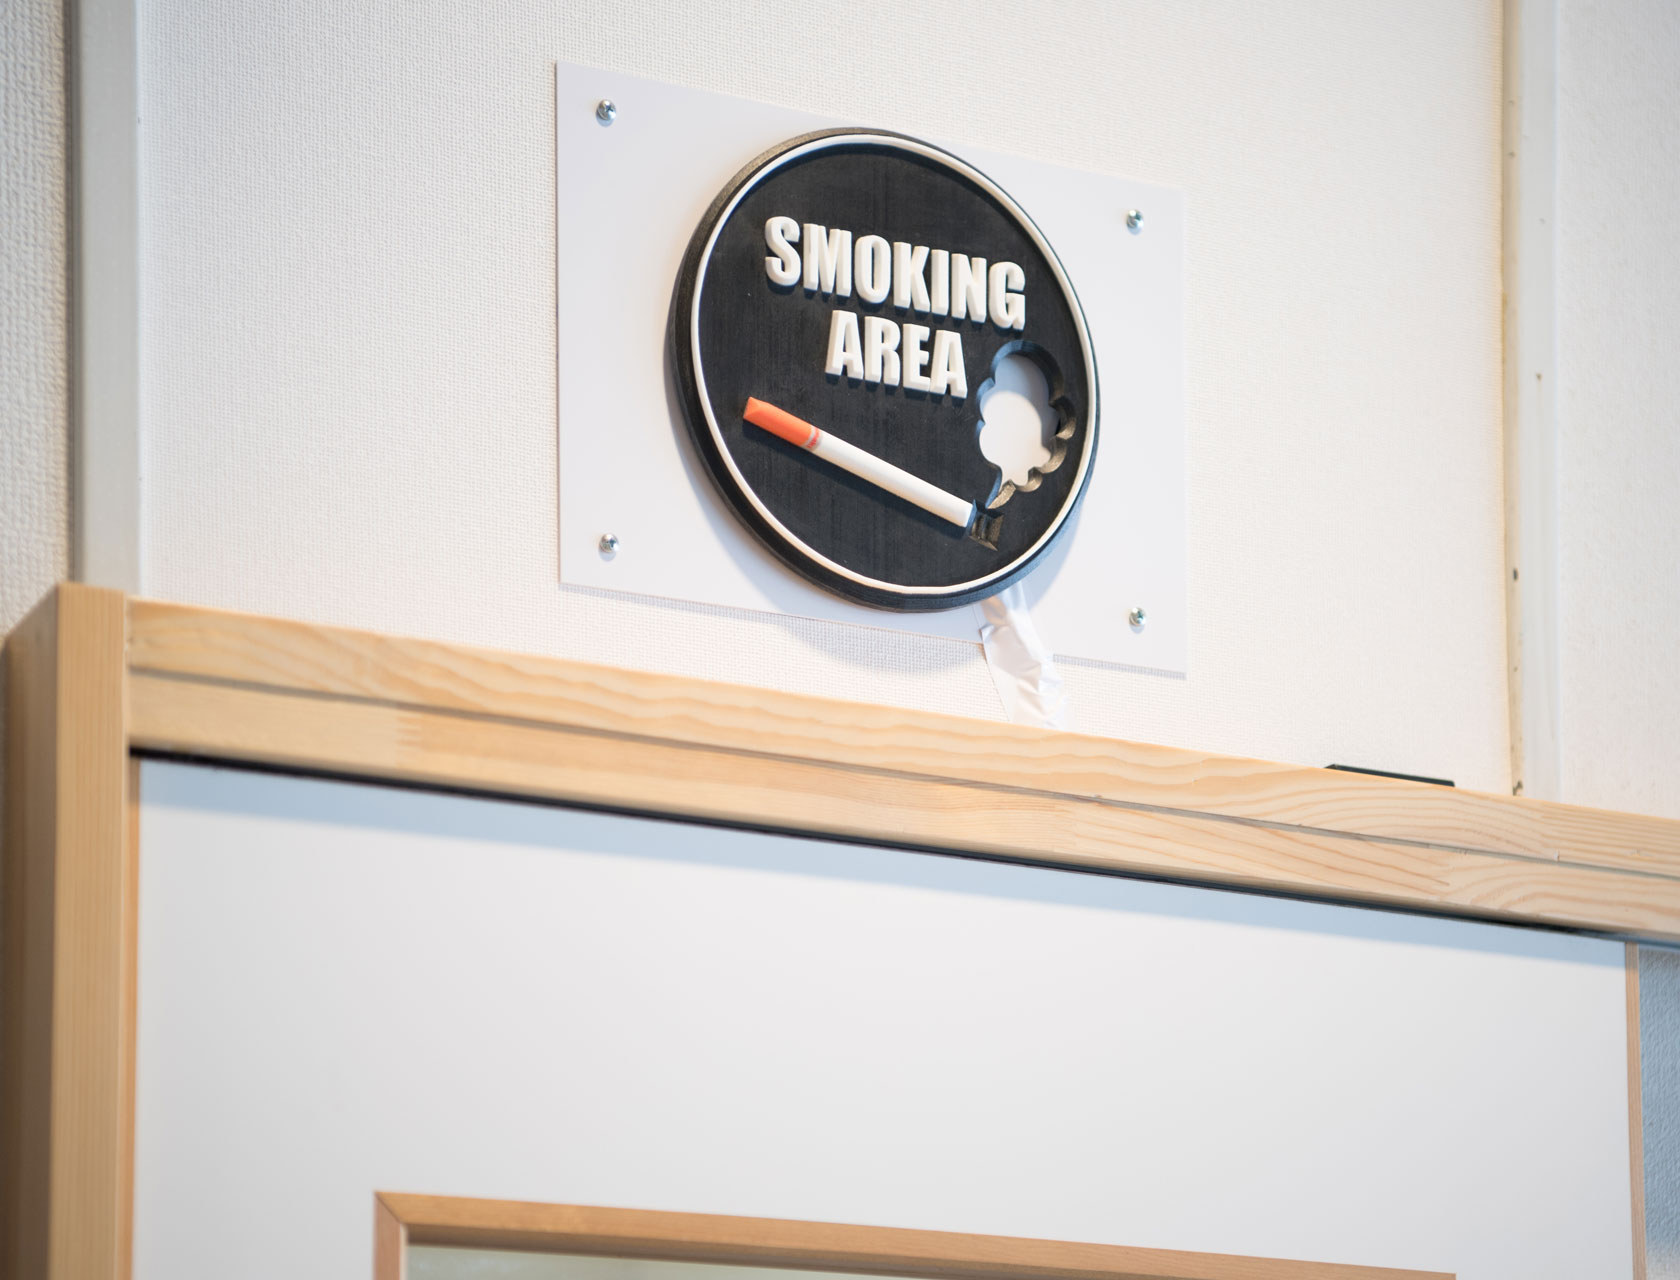 Pictgram sign (Smoking area)